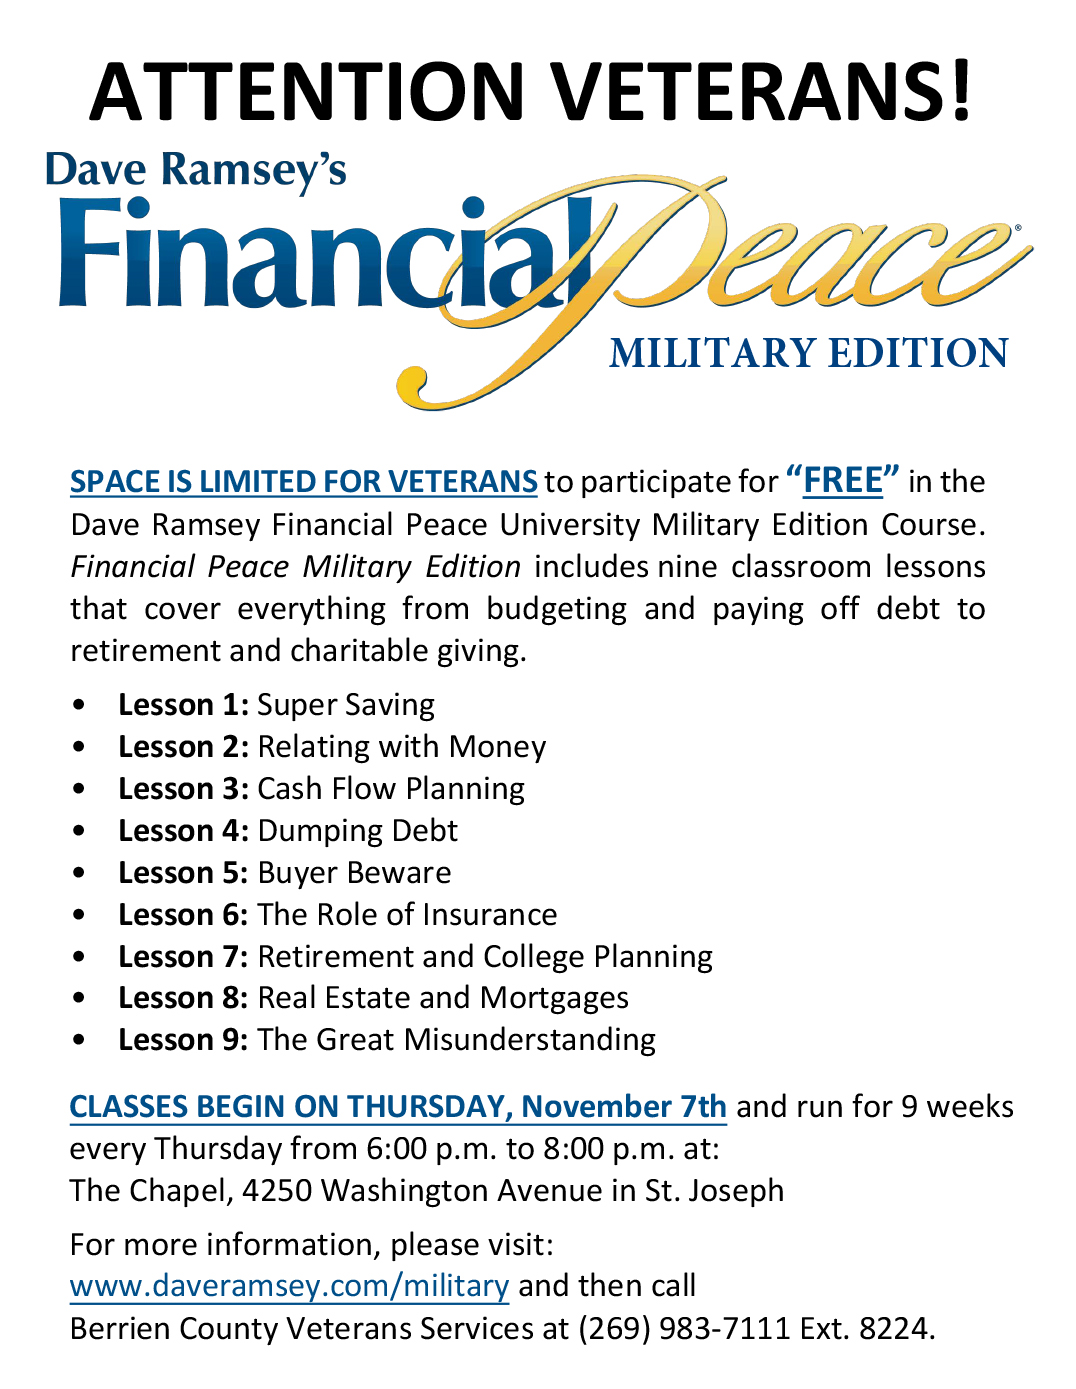 FPU Military Edition Flyer